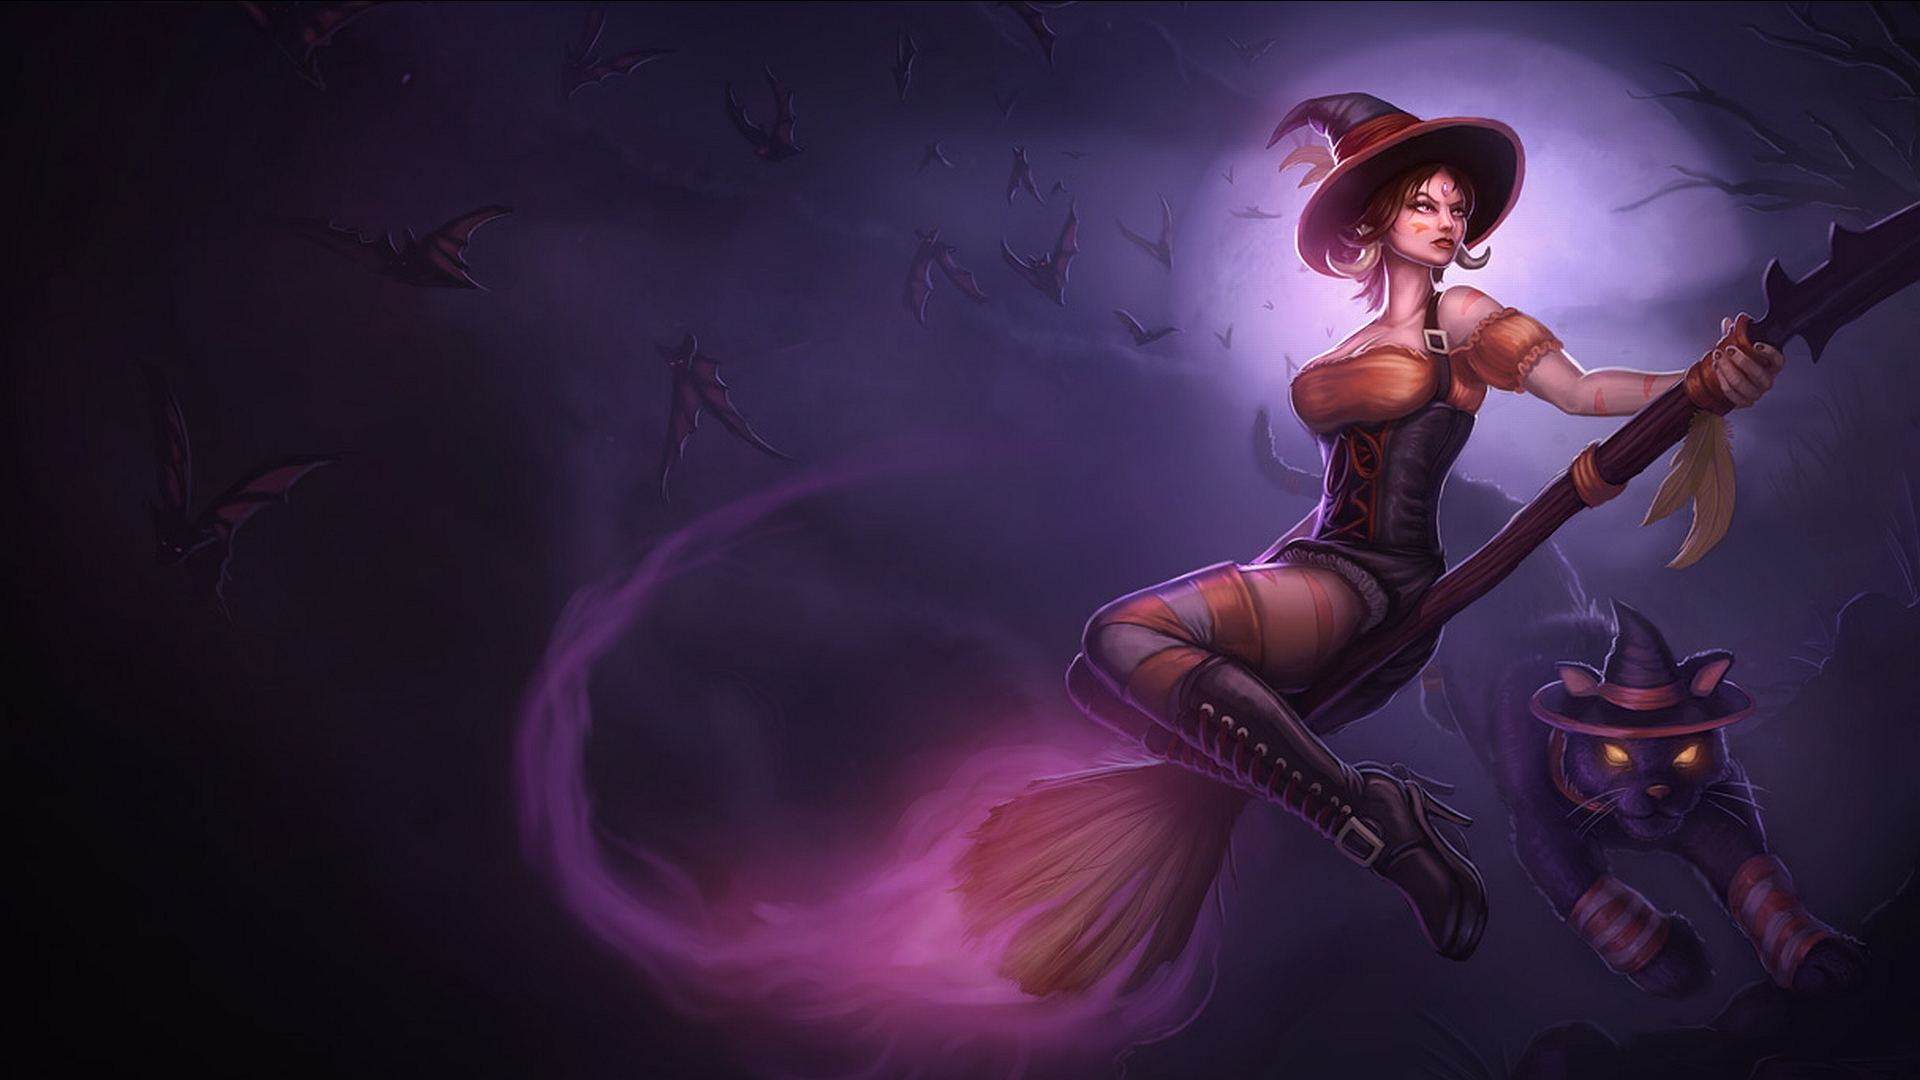 art dark horror witch wallpaper 1920x1080 35302 WallpaperUP 1920x1080